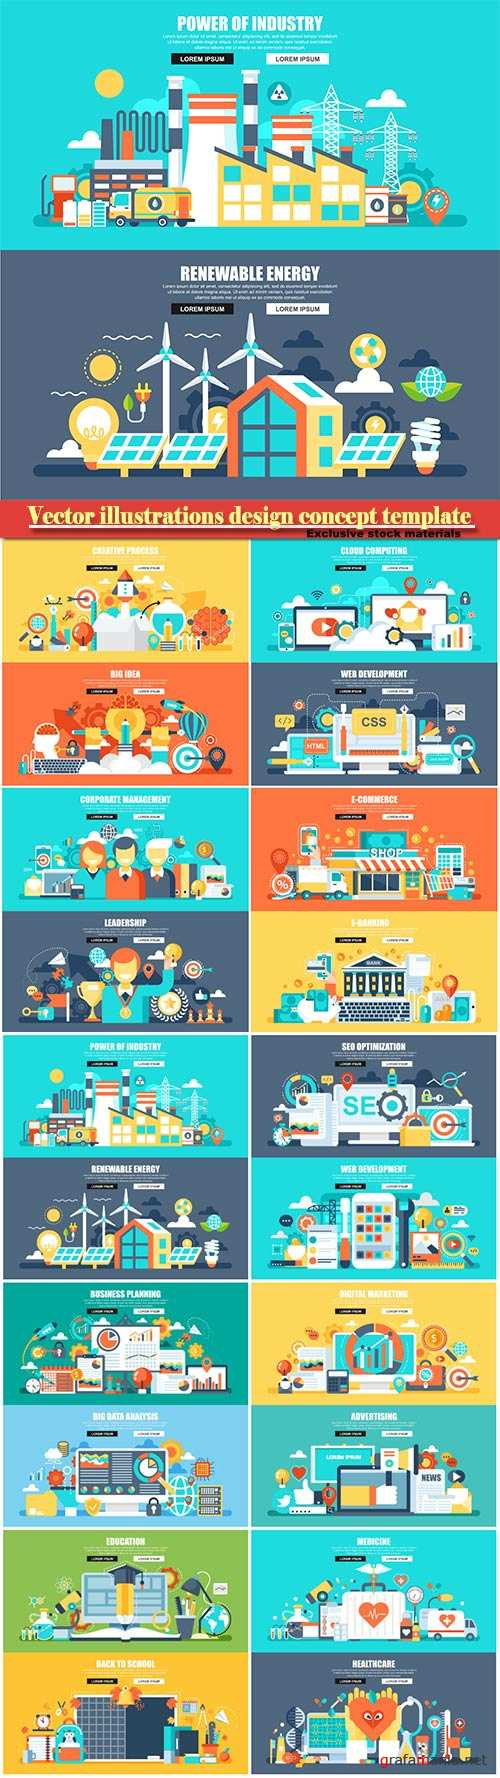 Vector illustrations design concept template